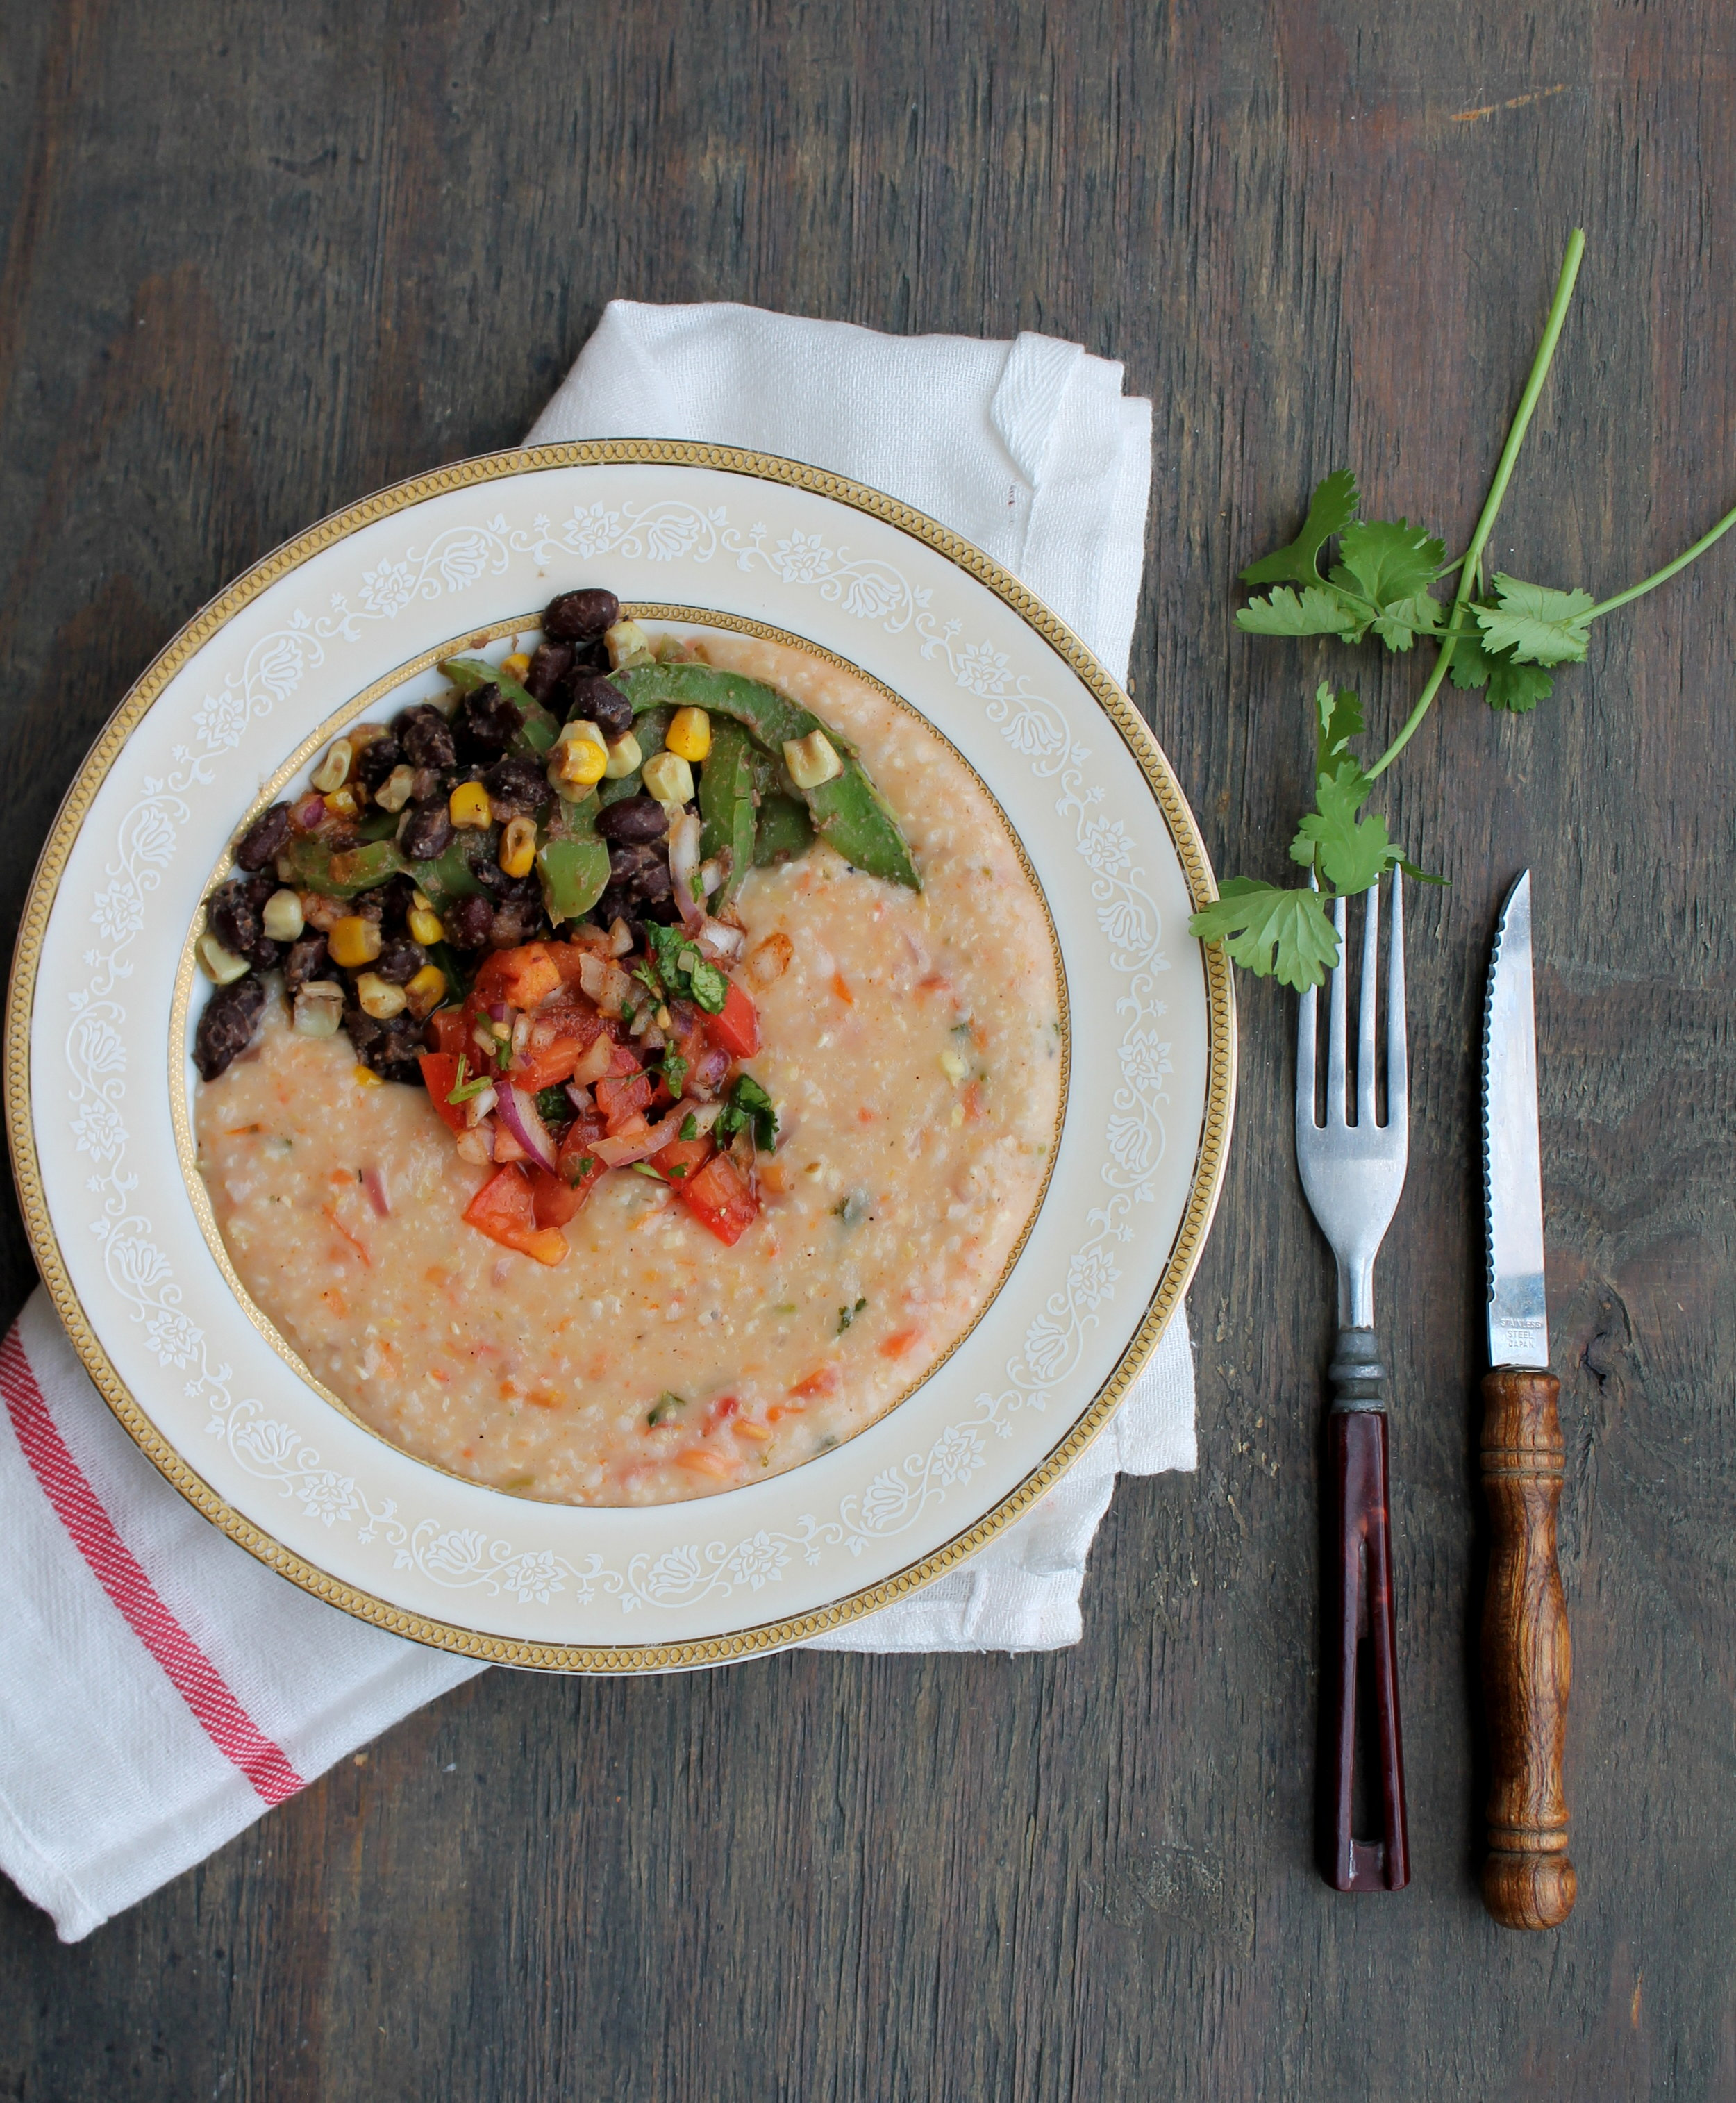 Mexican-Style Grits is one-pot comforting meal packed with Mexican flavors. It is naturally gluten-free and vegan friendly.